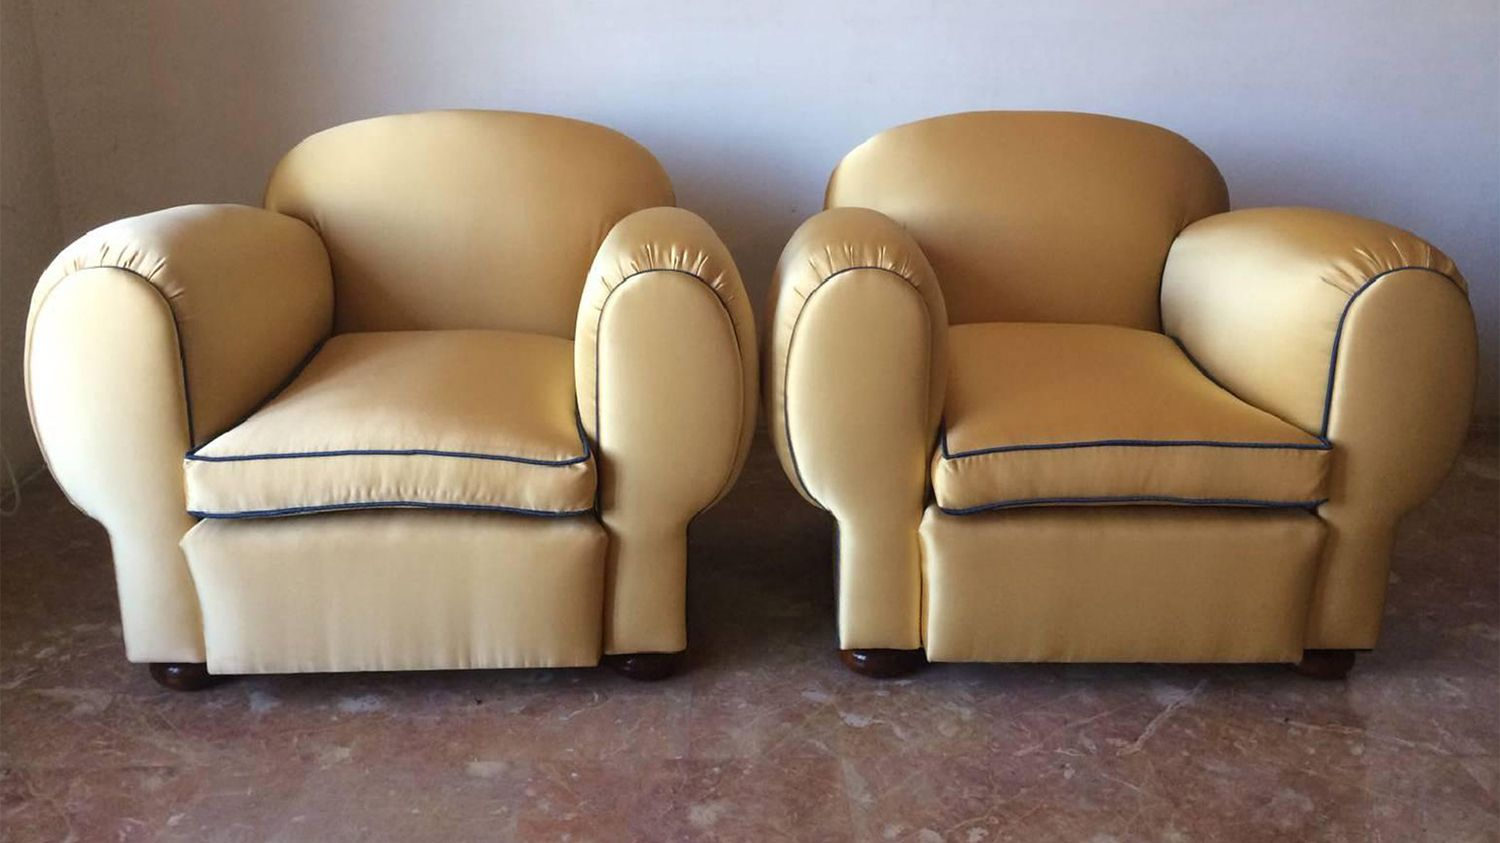 french art deco elephant armchairs 1940s set of 2 for sale at pamono. Black Bedroom Furniture Sets. Home Design Ideas